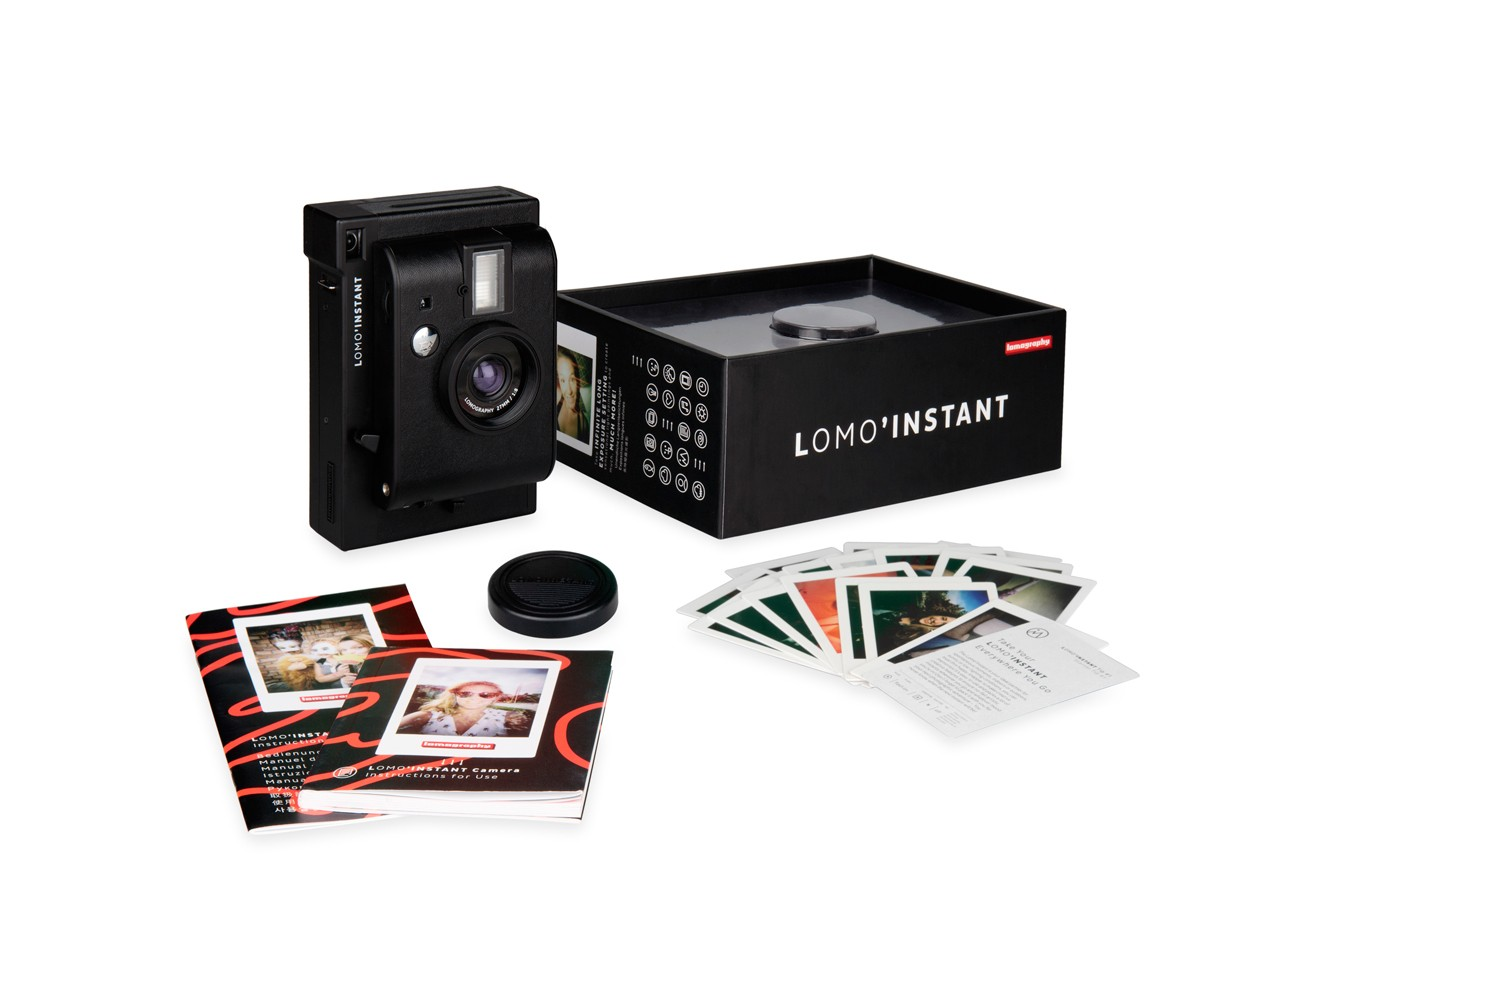 Lomo Instant camera package